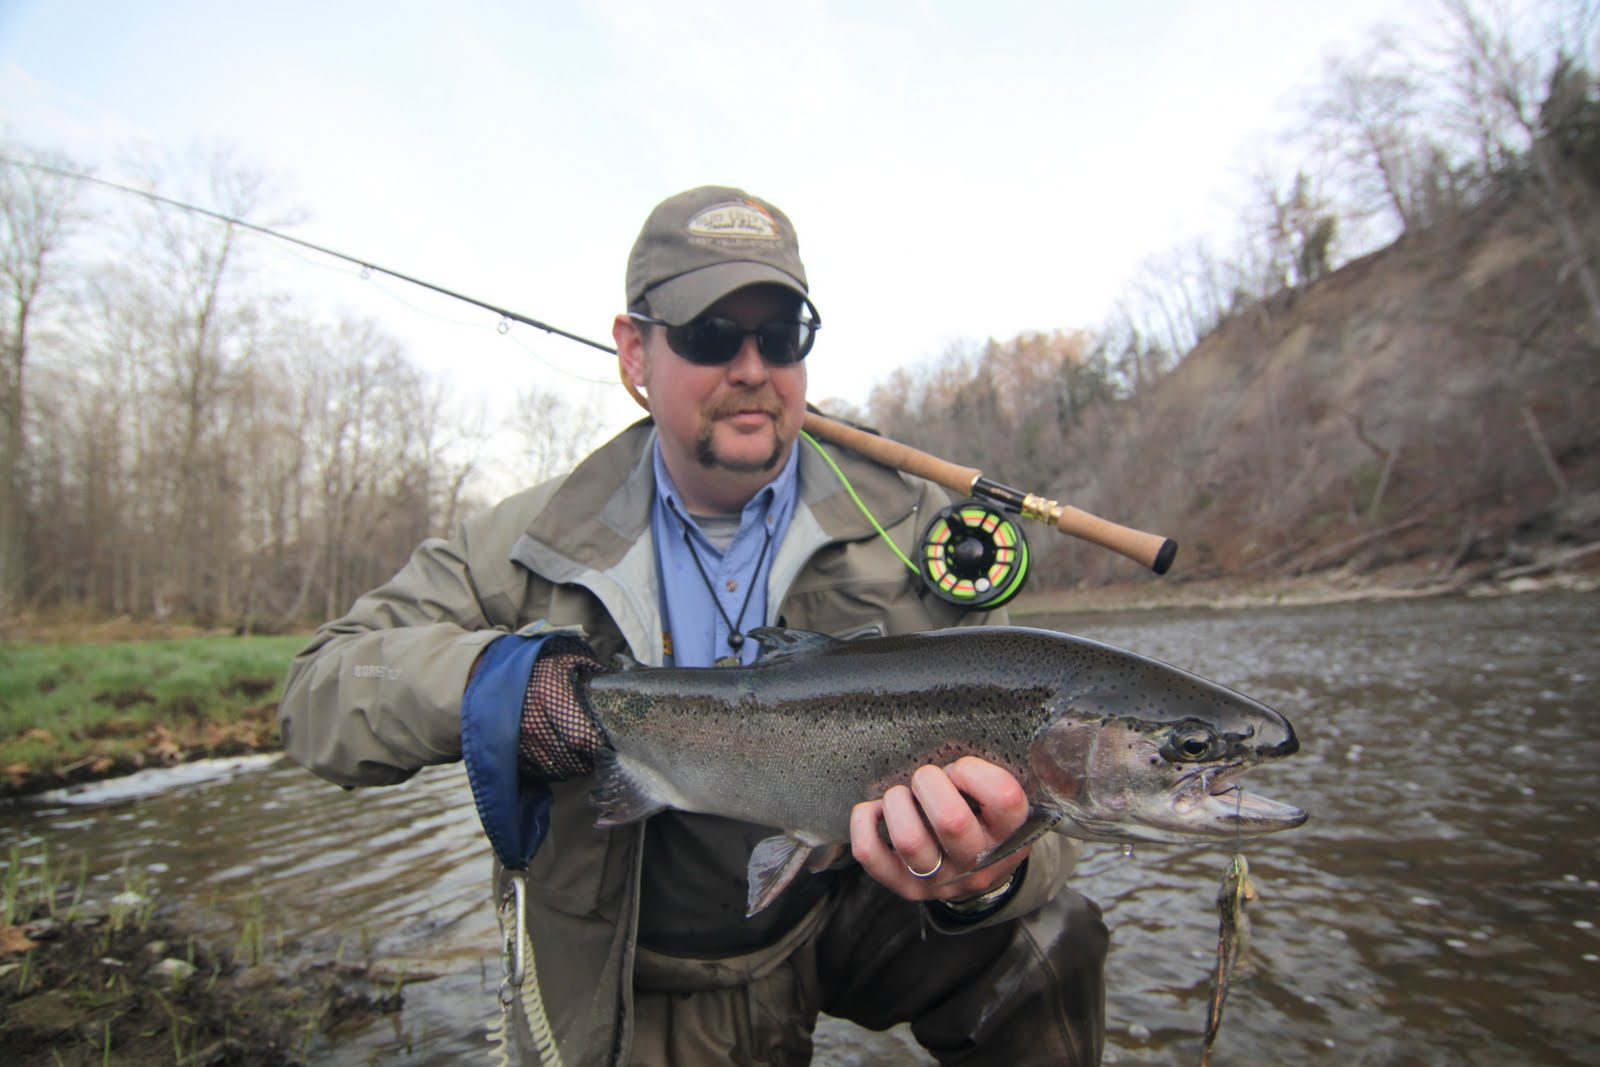 Steelhead alley outfitters lake erie fly fishing guide for Ohio fishing reports